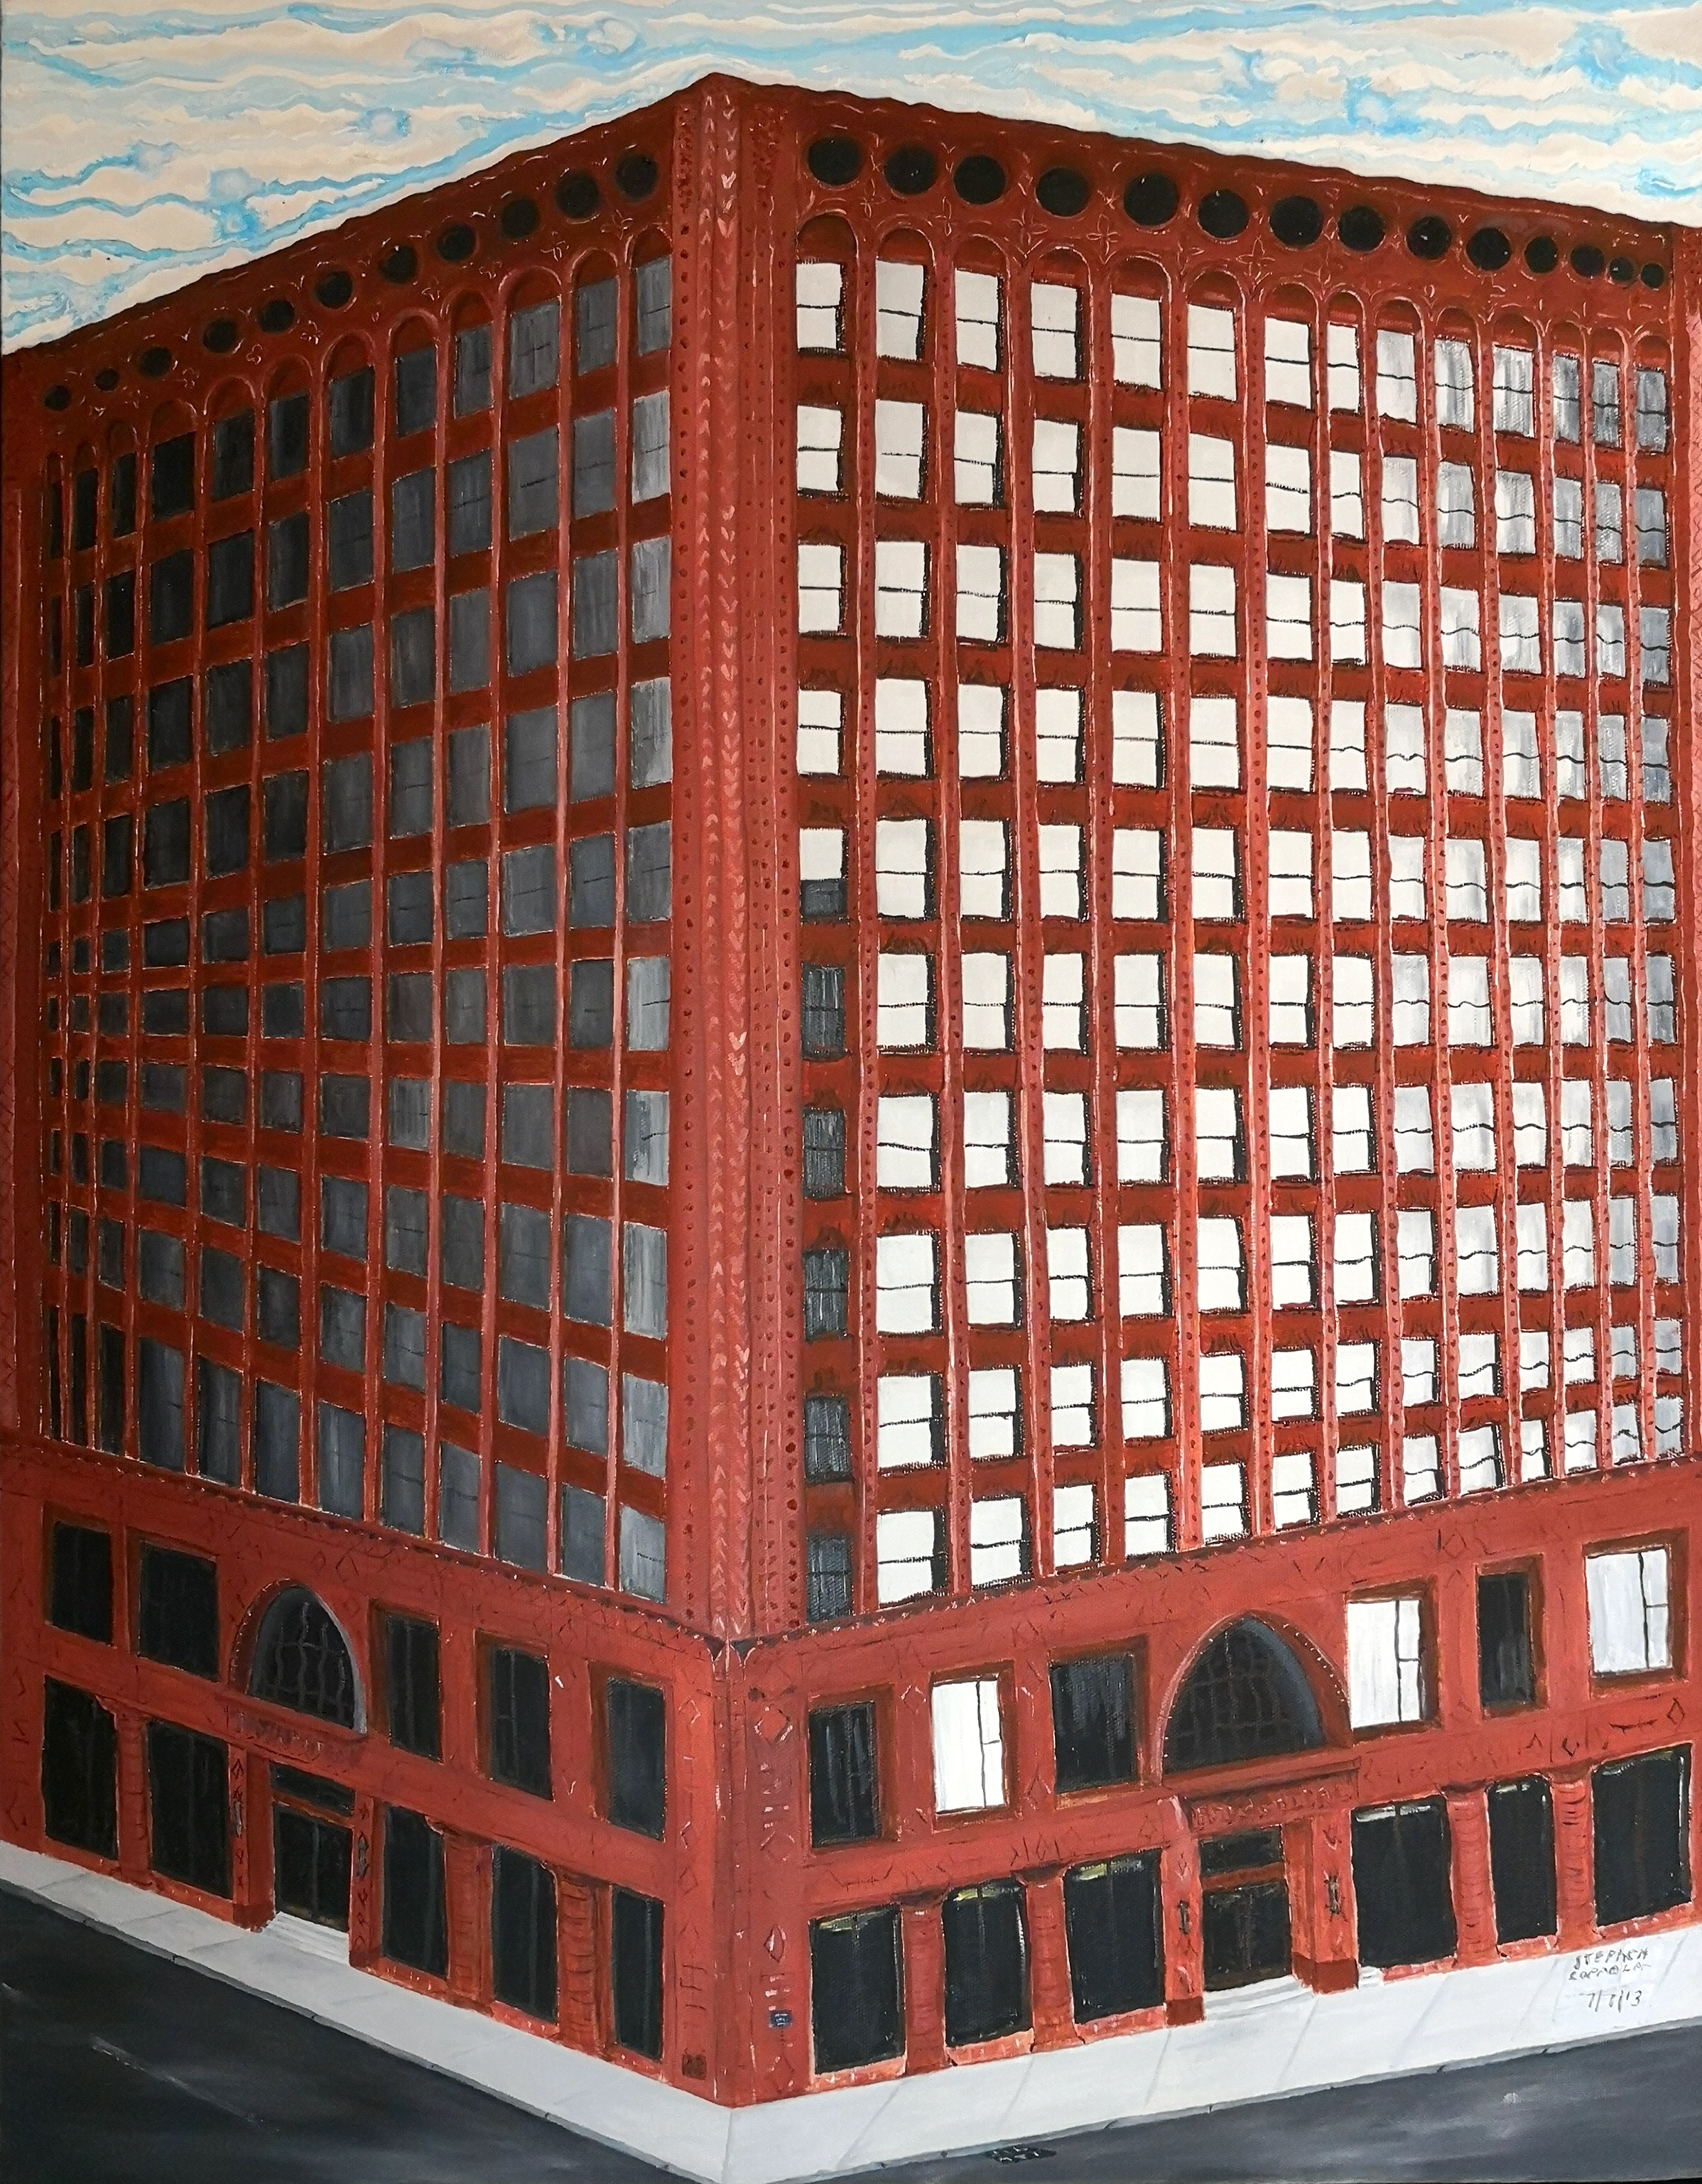 Stephen Coppola, The Guaranty Building, Oil on canvas, 28 x 22 inches (71.1 x 55.9 cm)